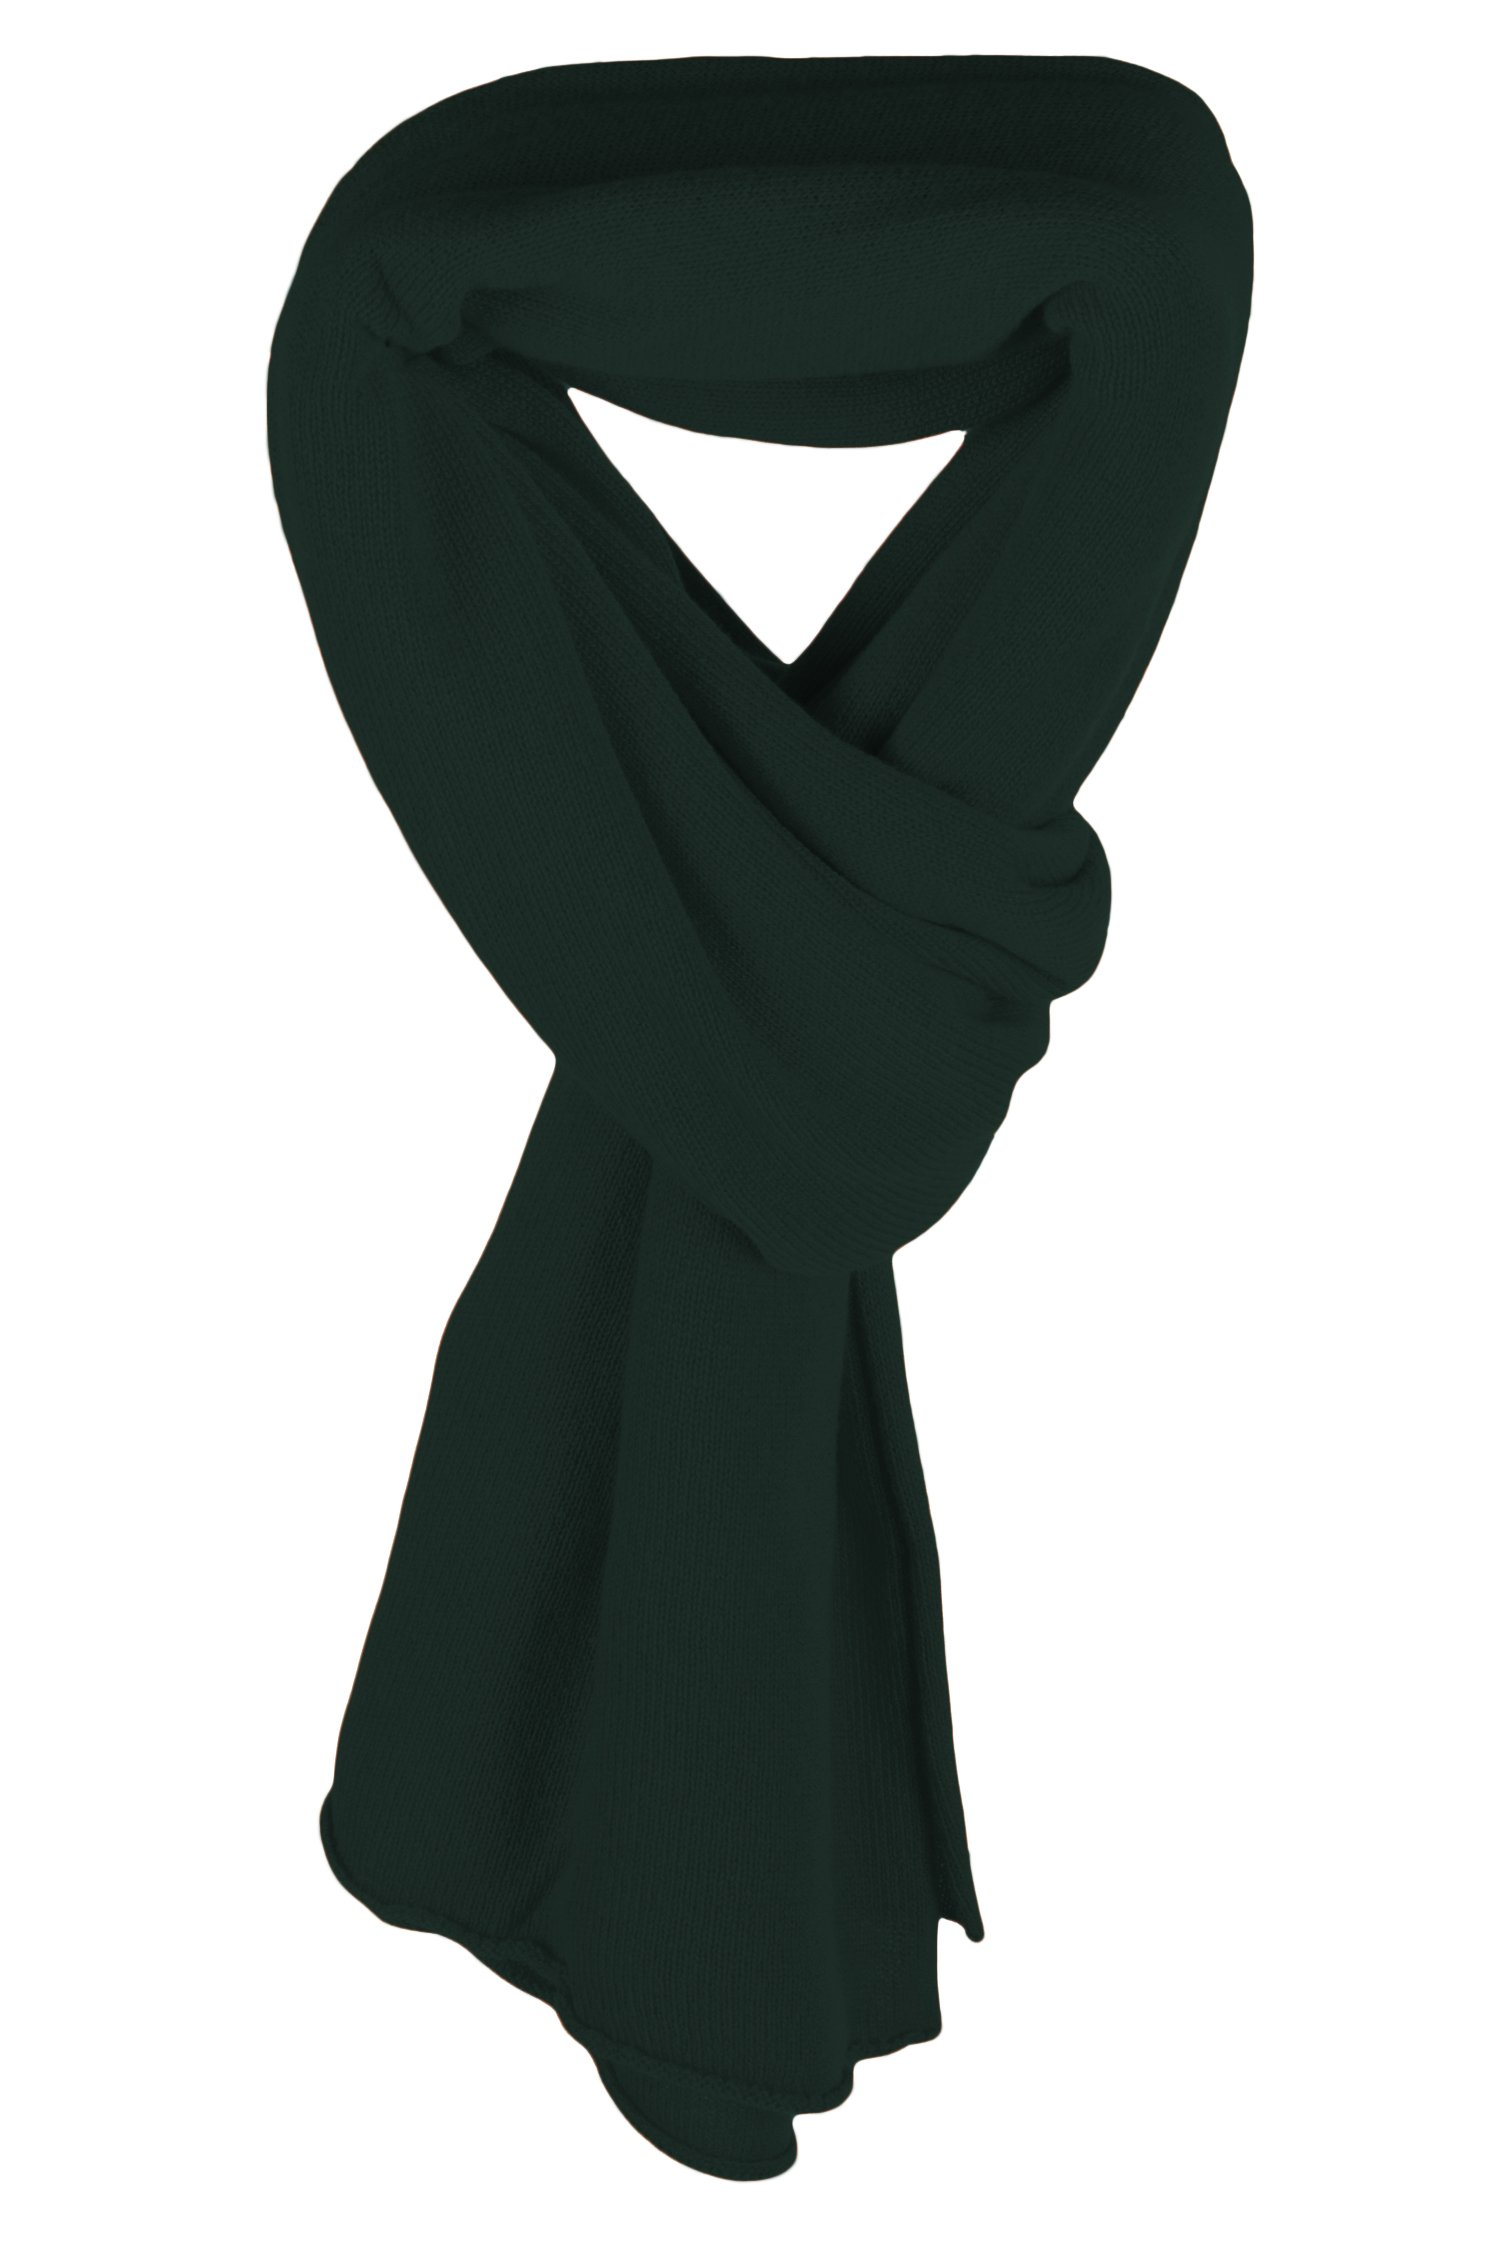 Ladies Ultrafine 100% Cashmere Scarf Wrap - Dark Green - made in Scotland by Love Cashmere RRP $400 by Love Cashmere (Image #1)